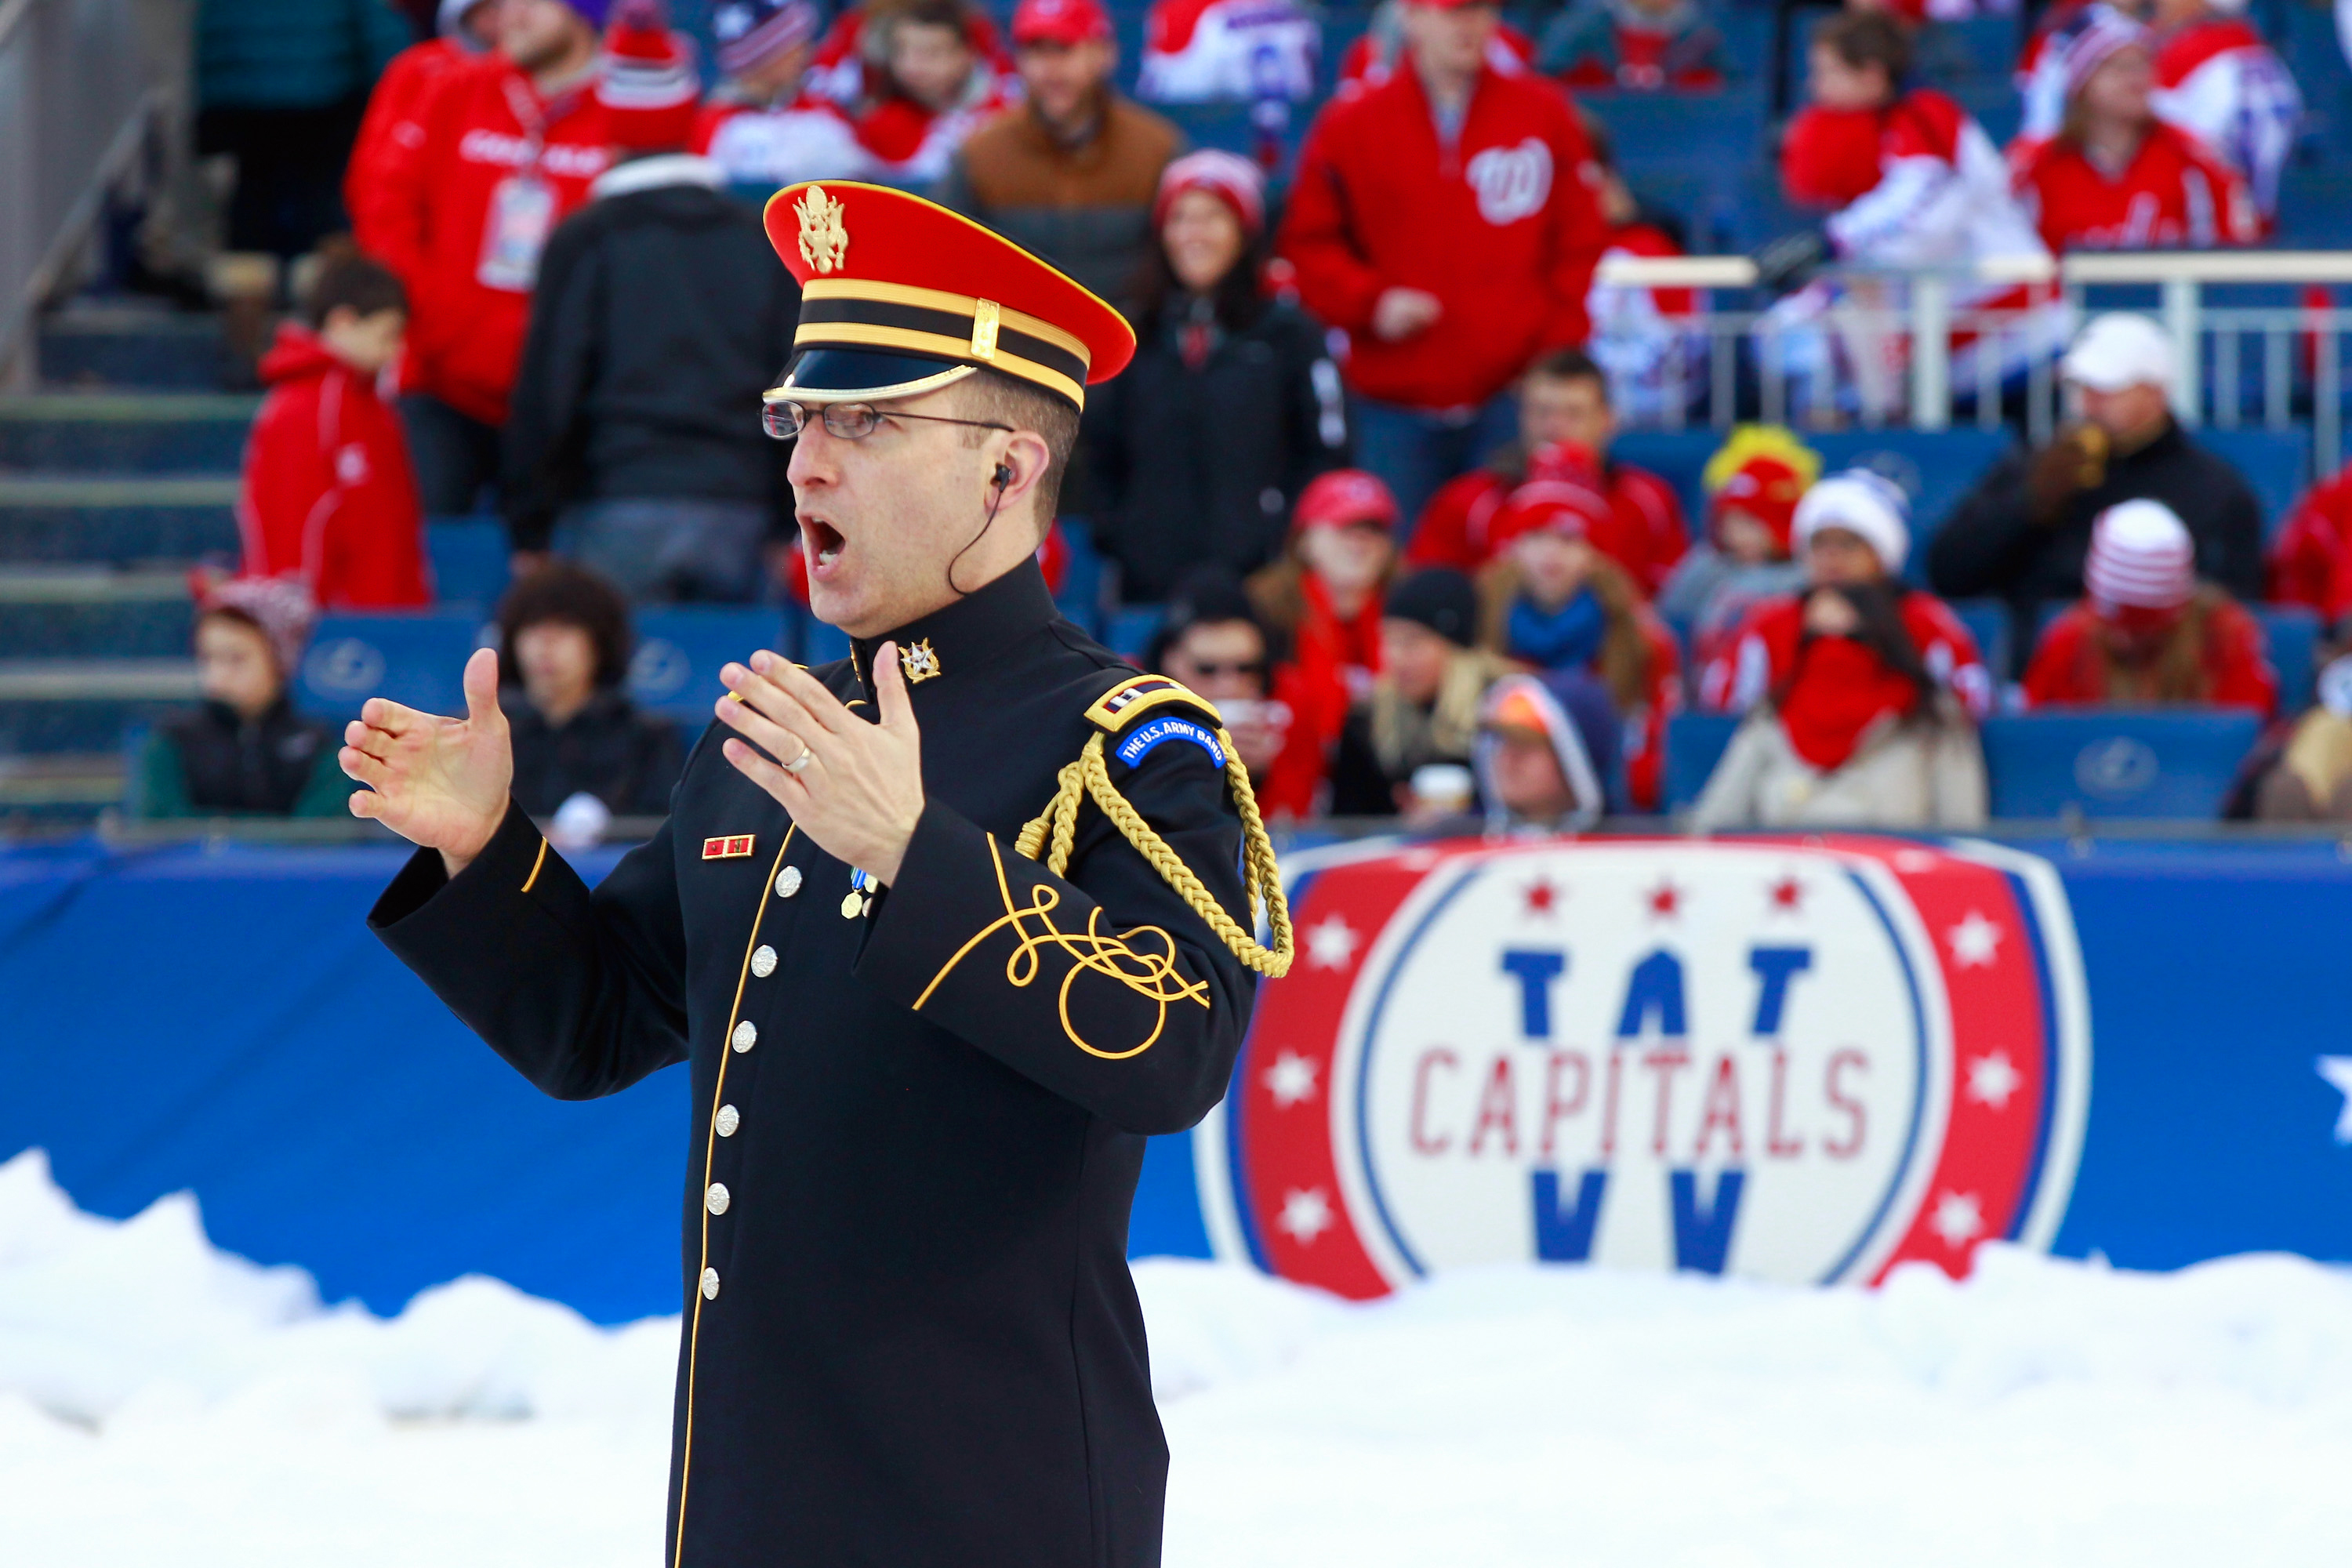 b05997252a2 The U.S. Army Chorus performs during the 2015 Bridgestone NHL Winter  Classic hockey game between the Washington ...